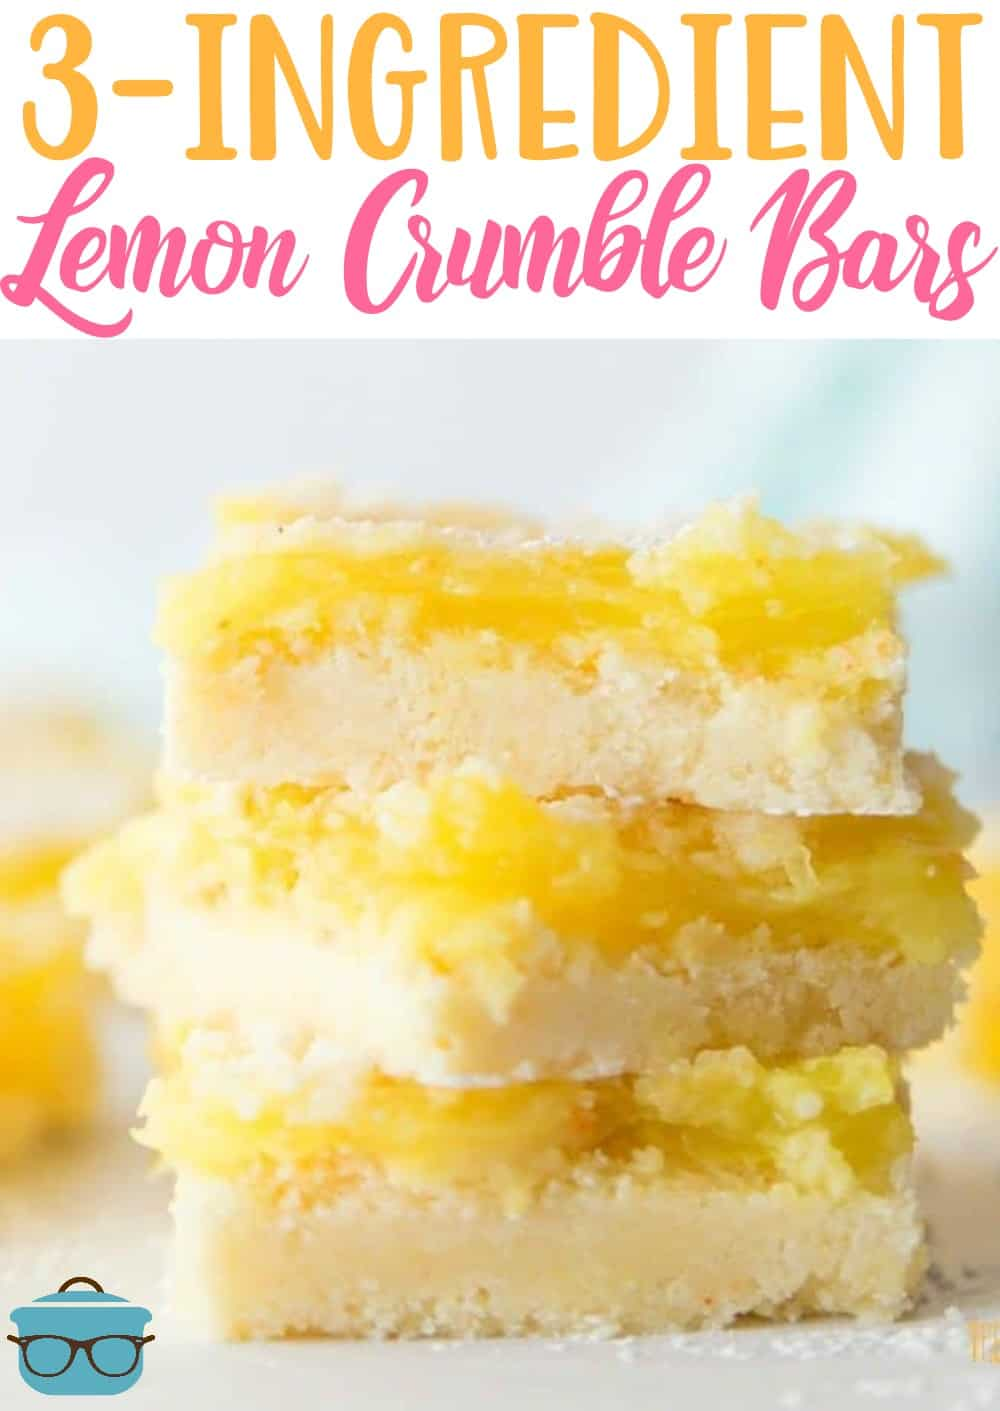 These Easy Lemon Crumble Bars only have 3 ingredients! This summertime dessert recipe only needs cake mix, butter and lemon pie filling! #lemonbars #dessert